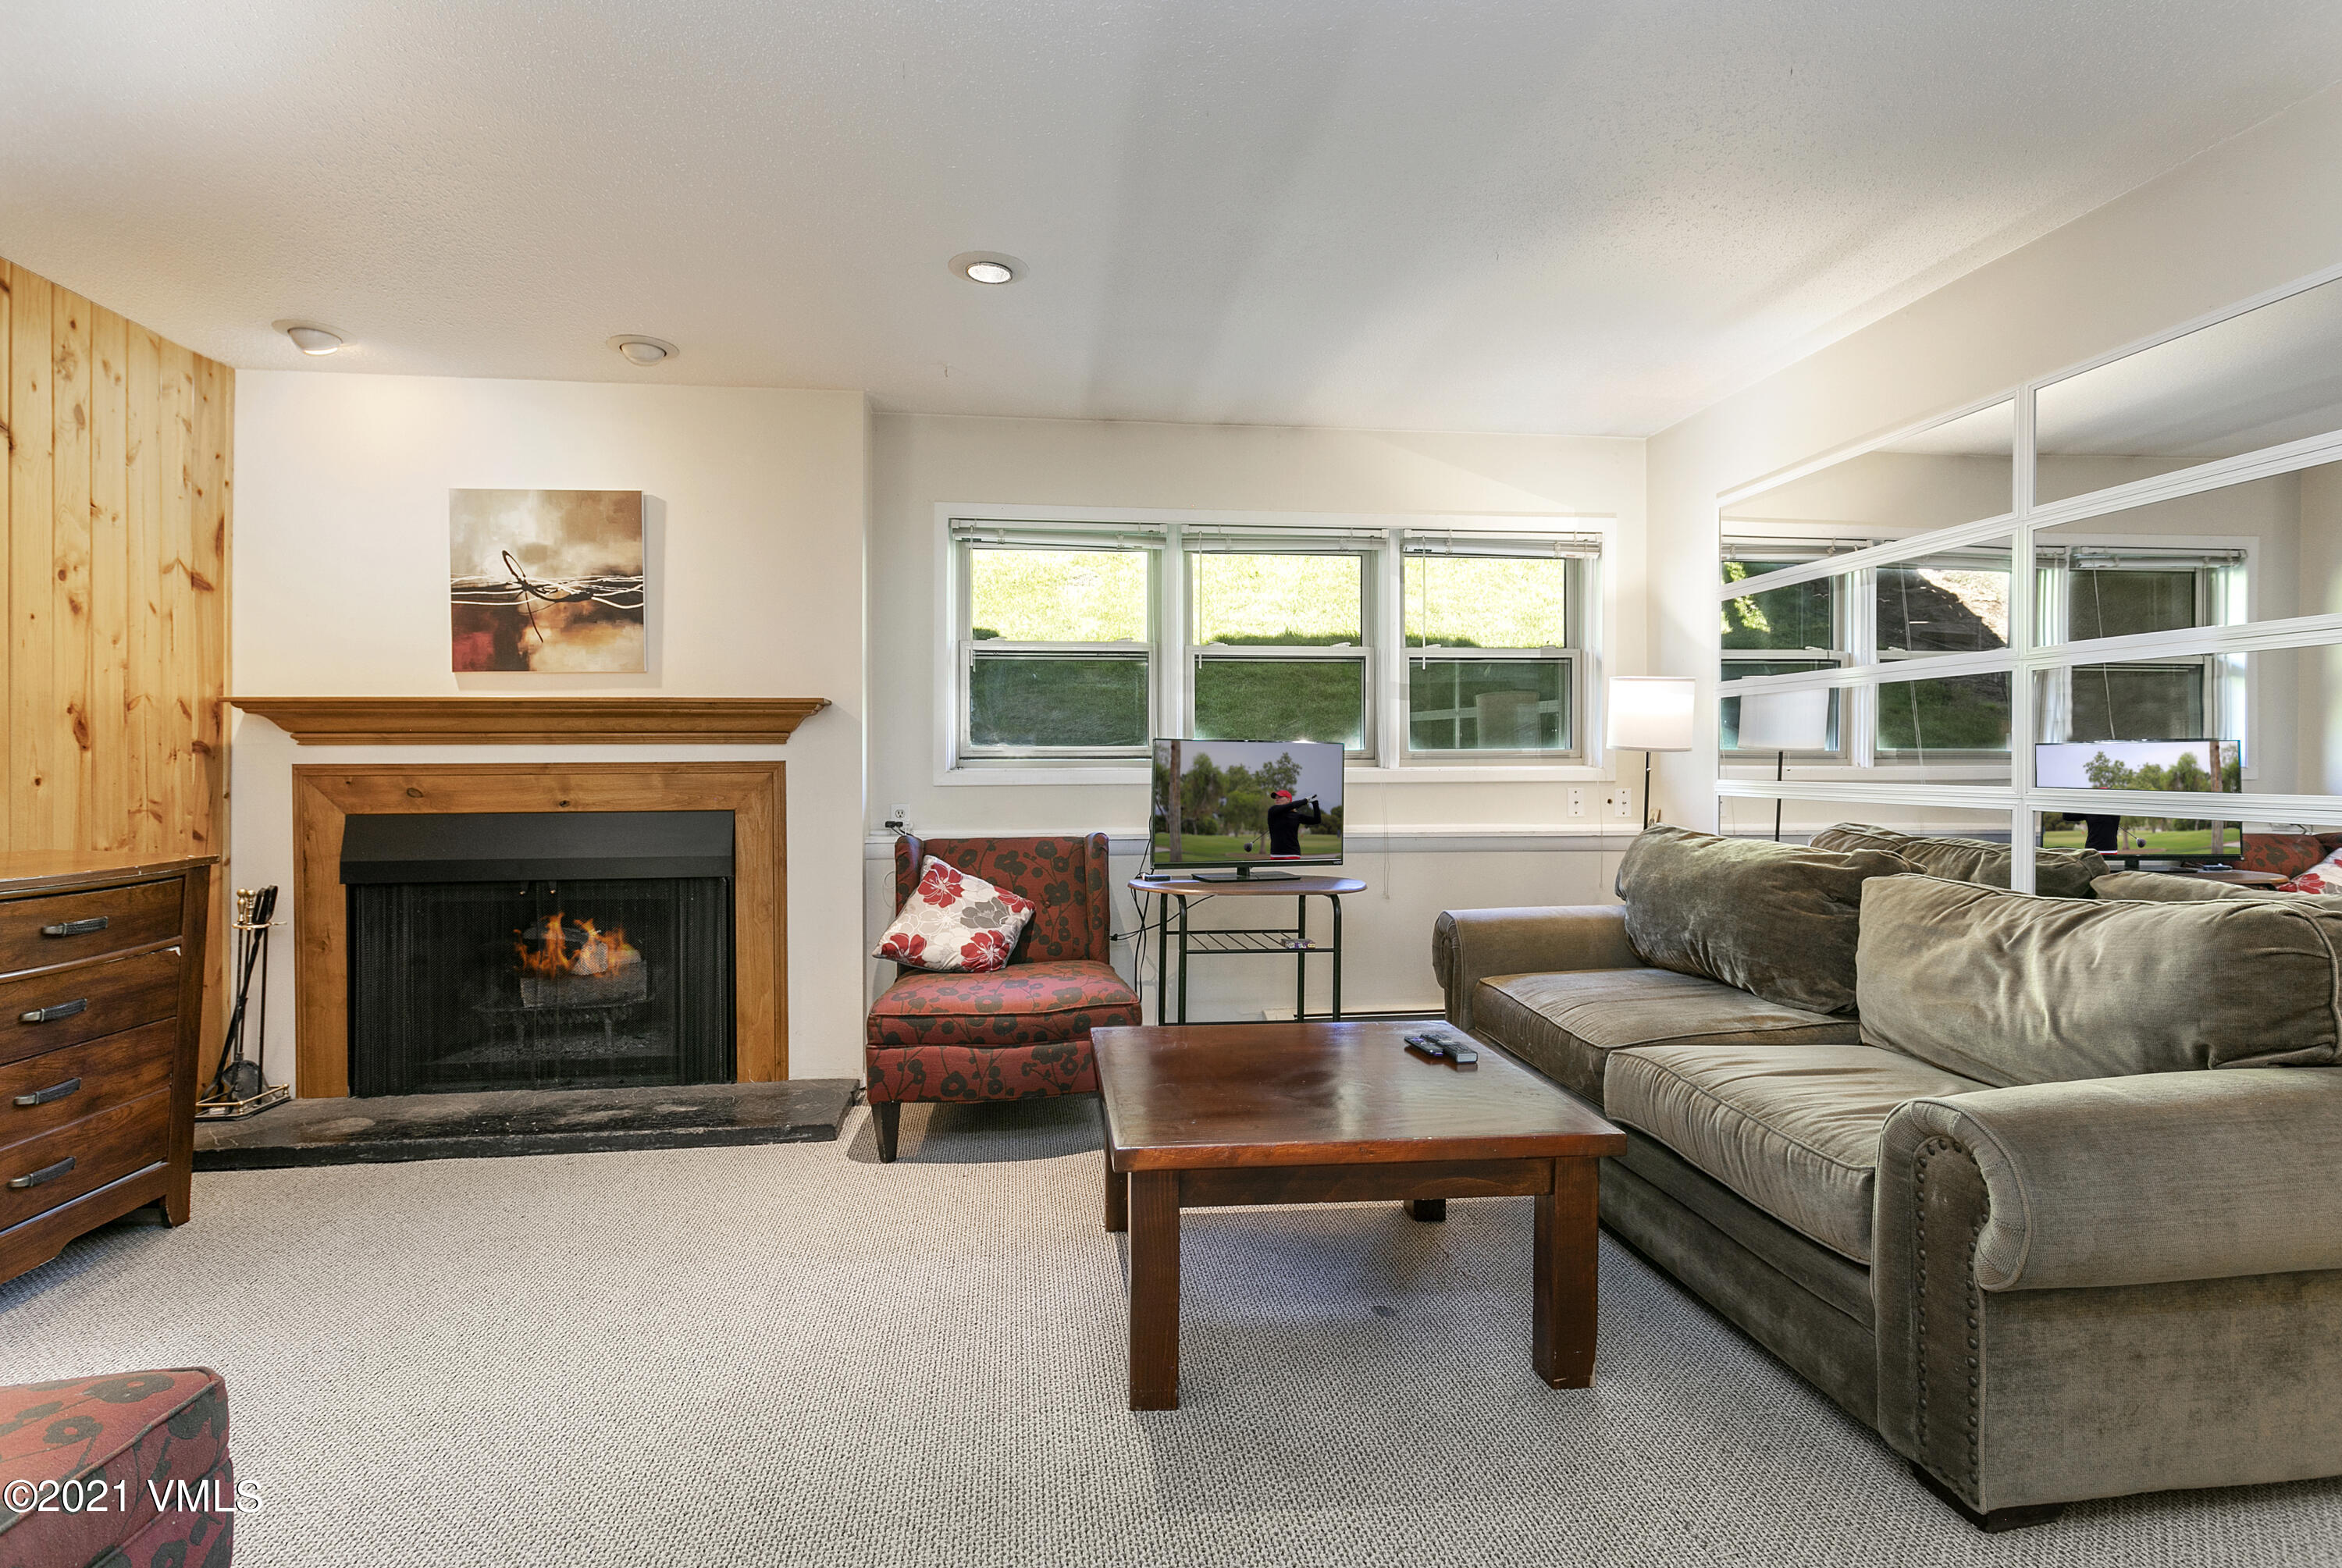 Lots of potential in this wonderful ground floor 2 BD condo. Great location-next to Town of Vail bus stop or Frontage Rd sidewalk that allows you to walk into Lionshead Village. Building has recently upgraded many interior items. Heat included in HOA dues! Great investment condo or primary residence in Town of Vail!